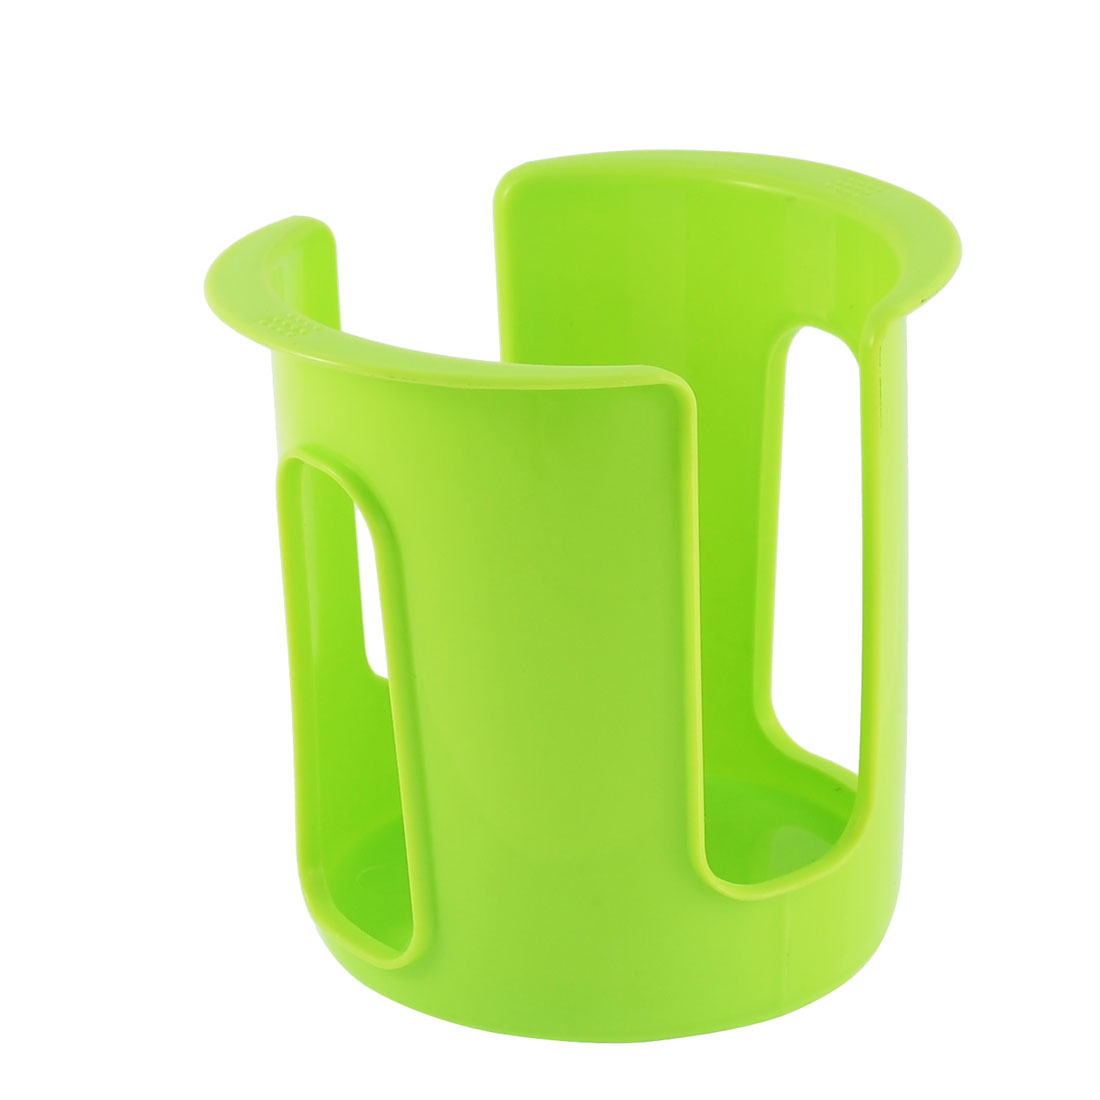 Kitchen Sink Dish Bowl Plastic Storage Hanging Drainer Holder Rack Green